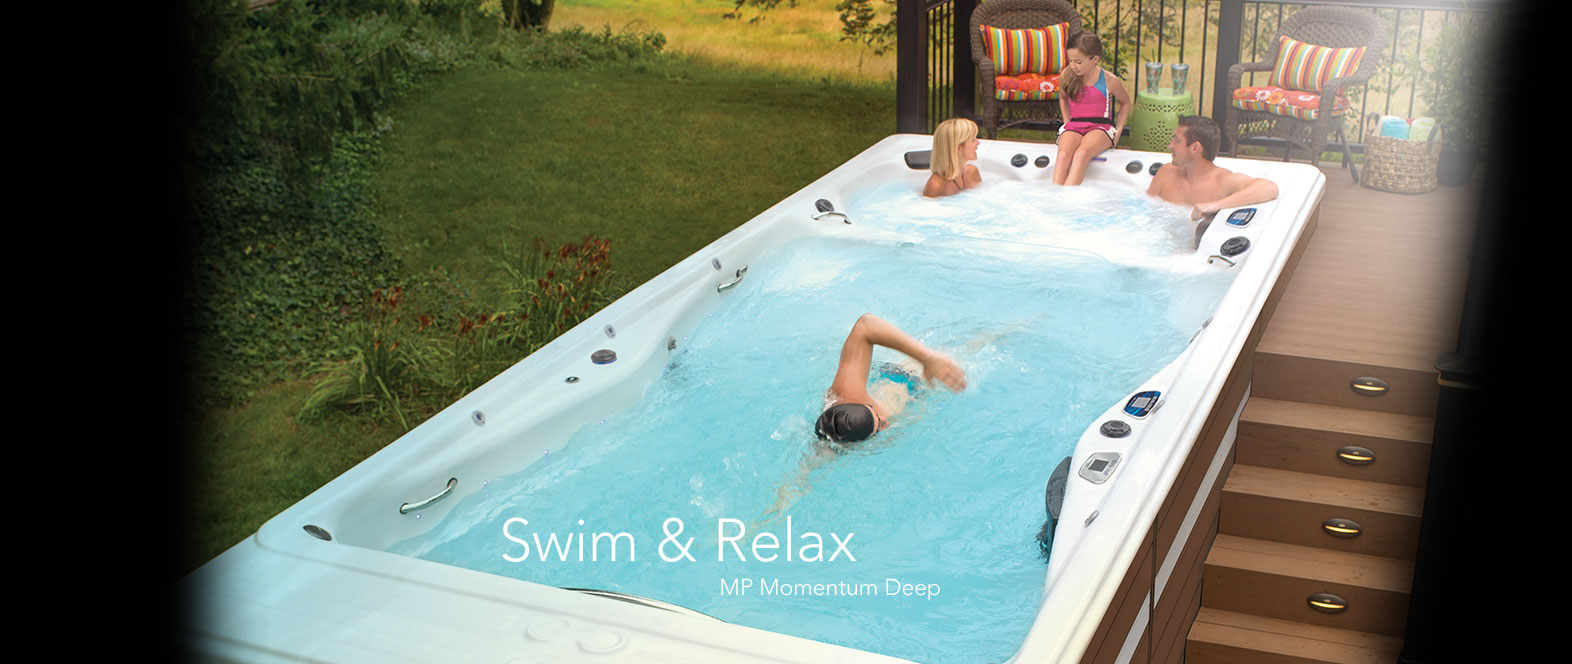 Swim & Relax in a MP Momentum™ Deep